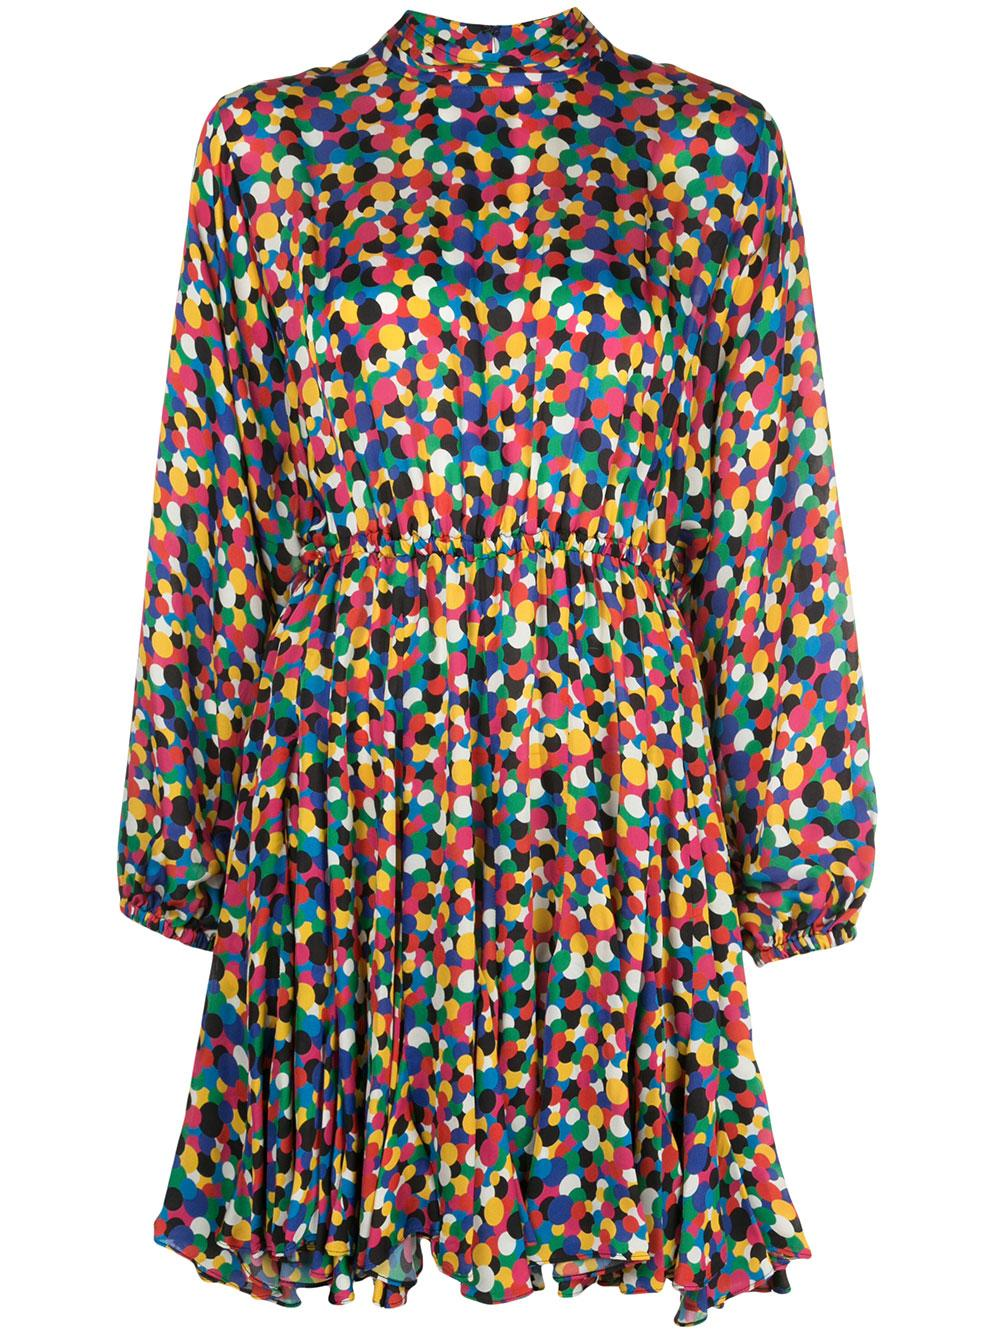 Caroline Confetti Dress